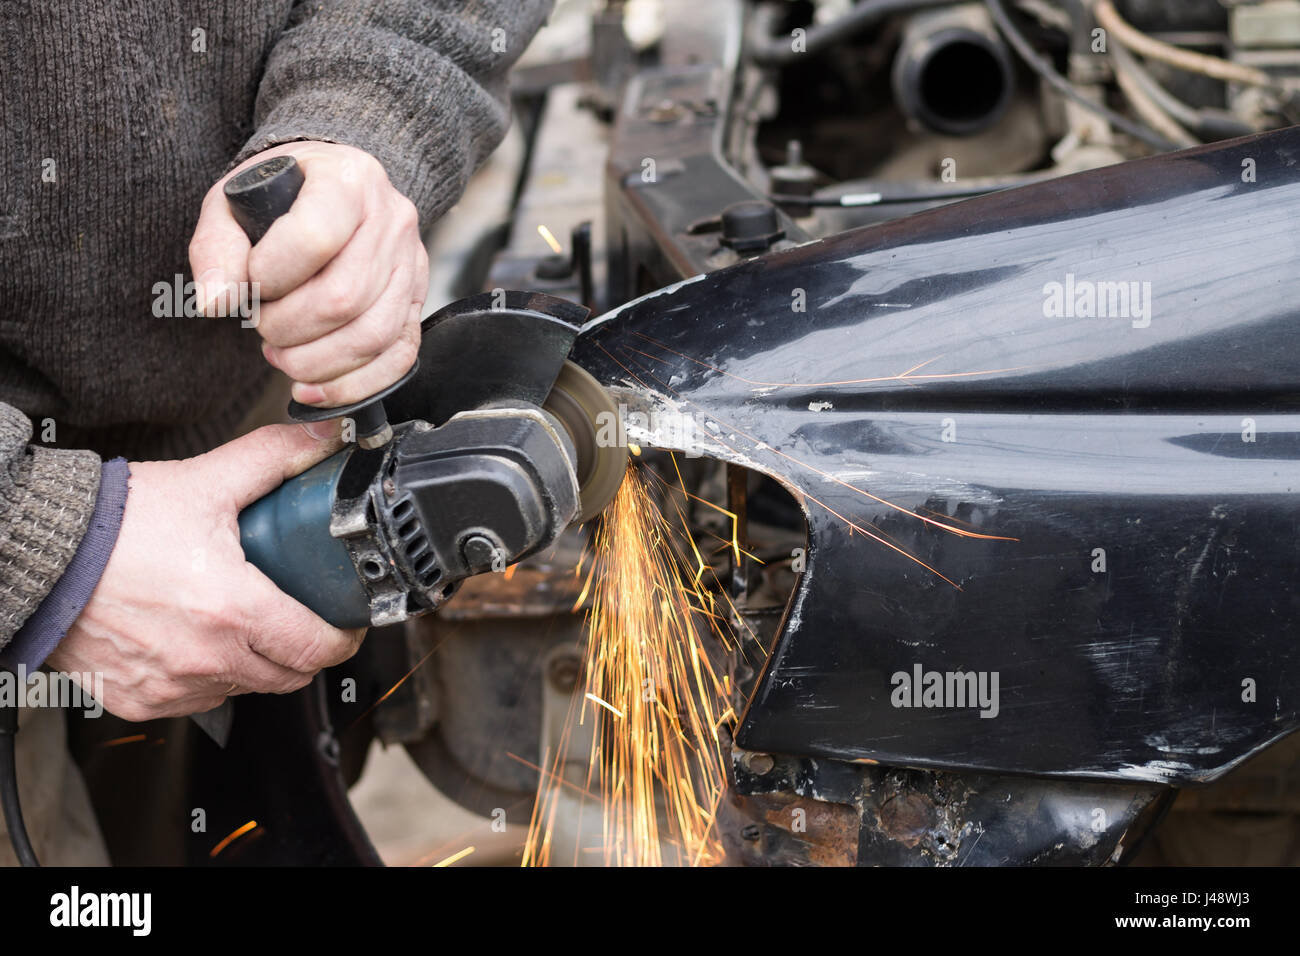 Repair service worker fix damaged car after crash on the road. Working with angle grinder to fix metal body. - Stock Image